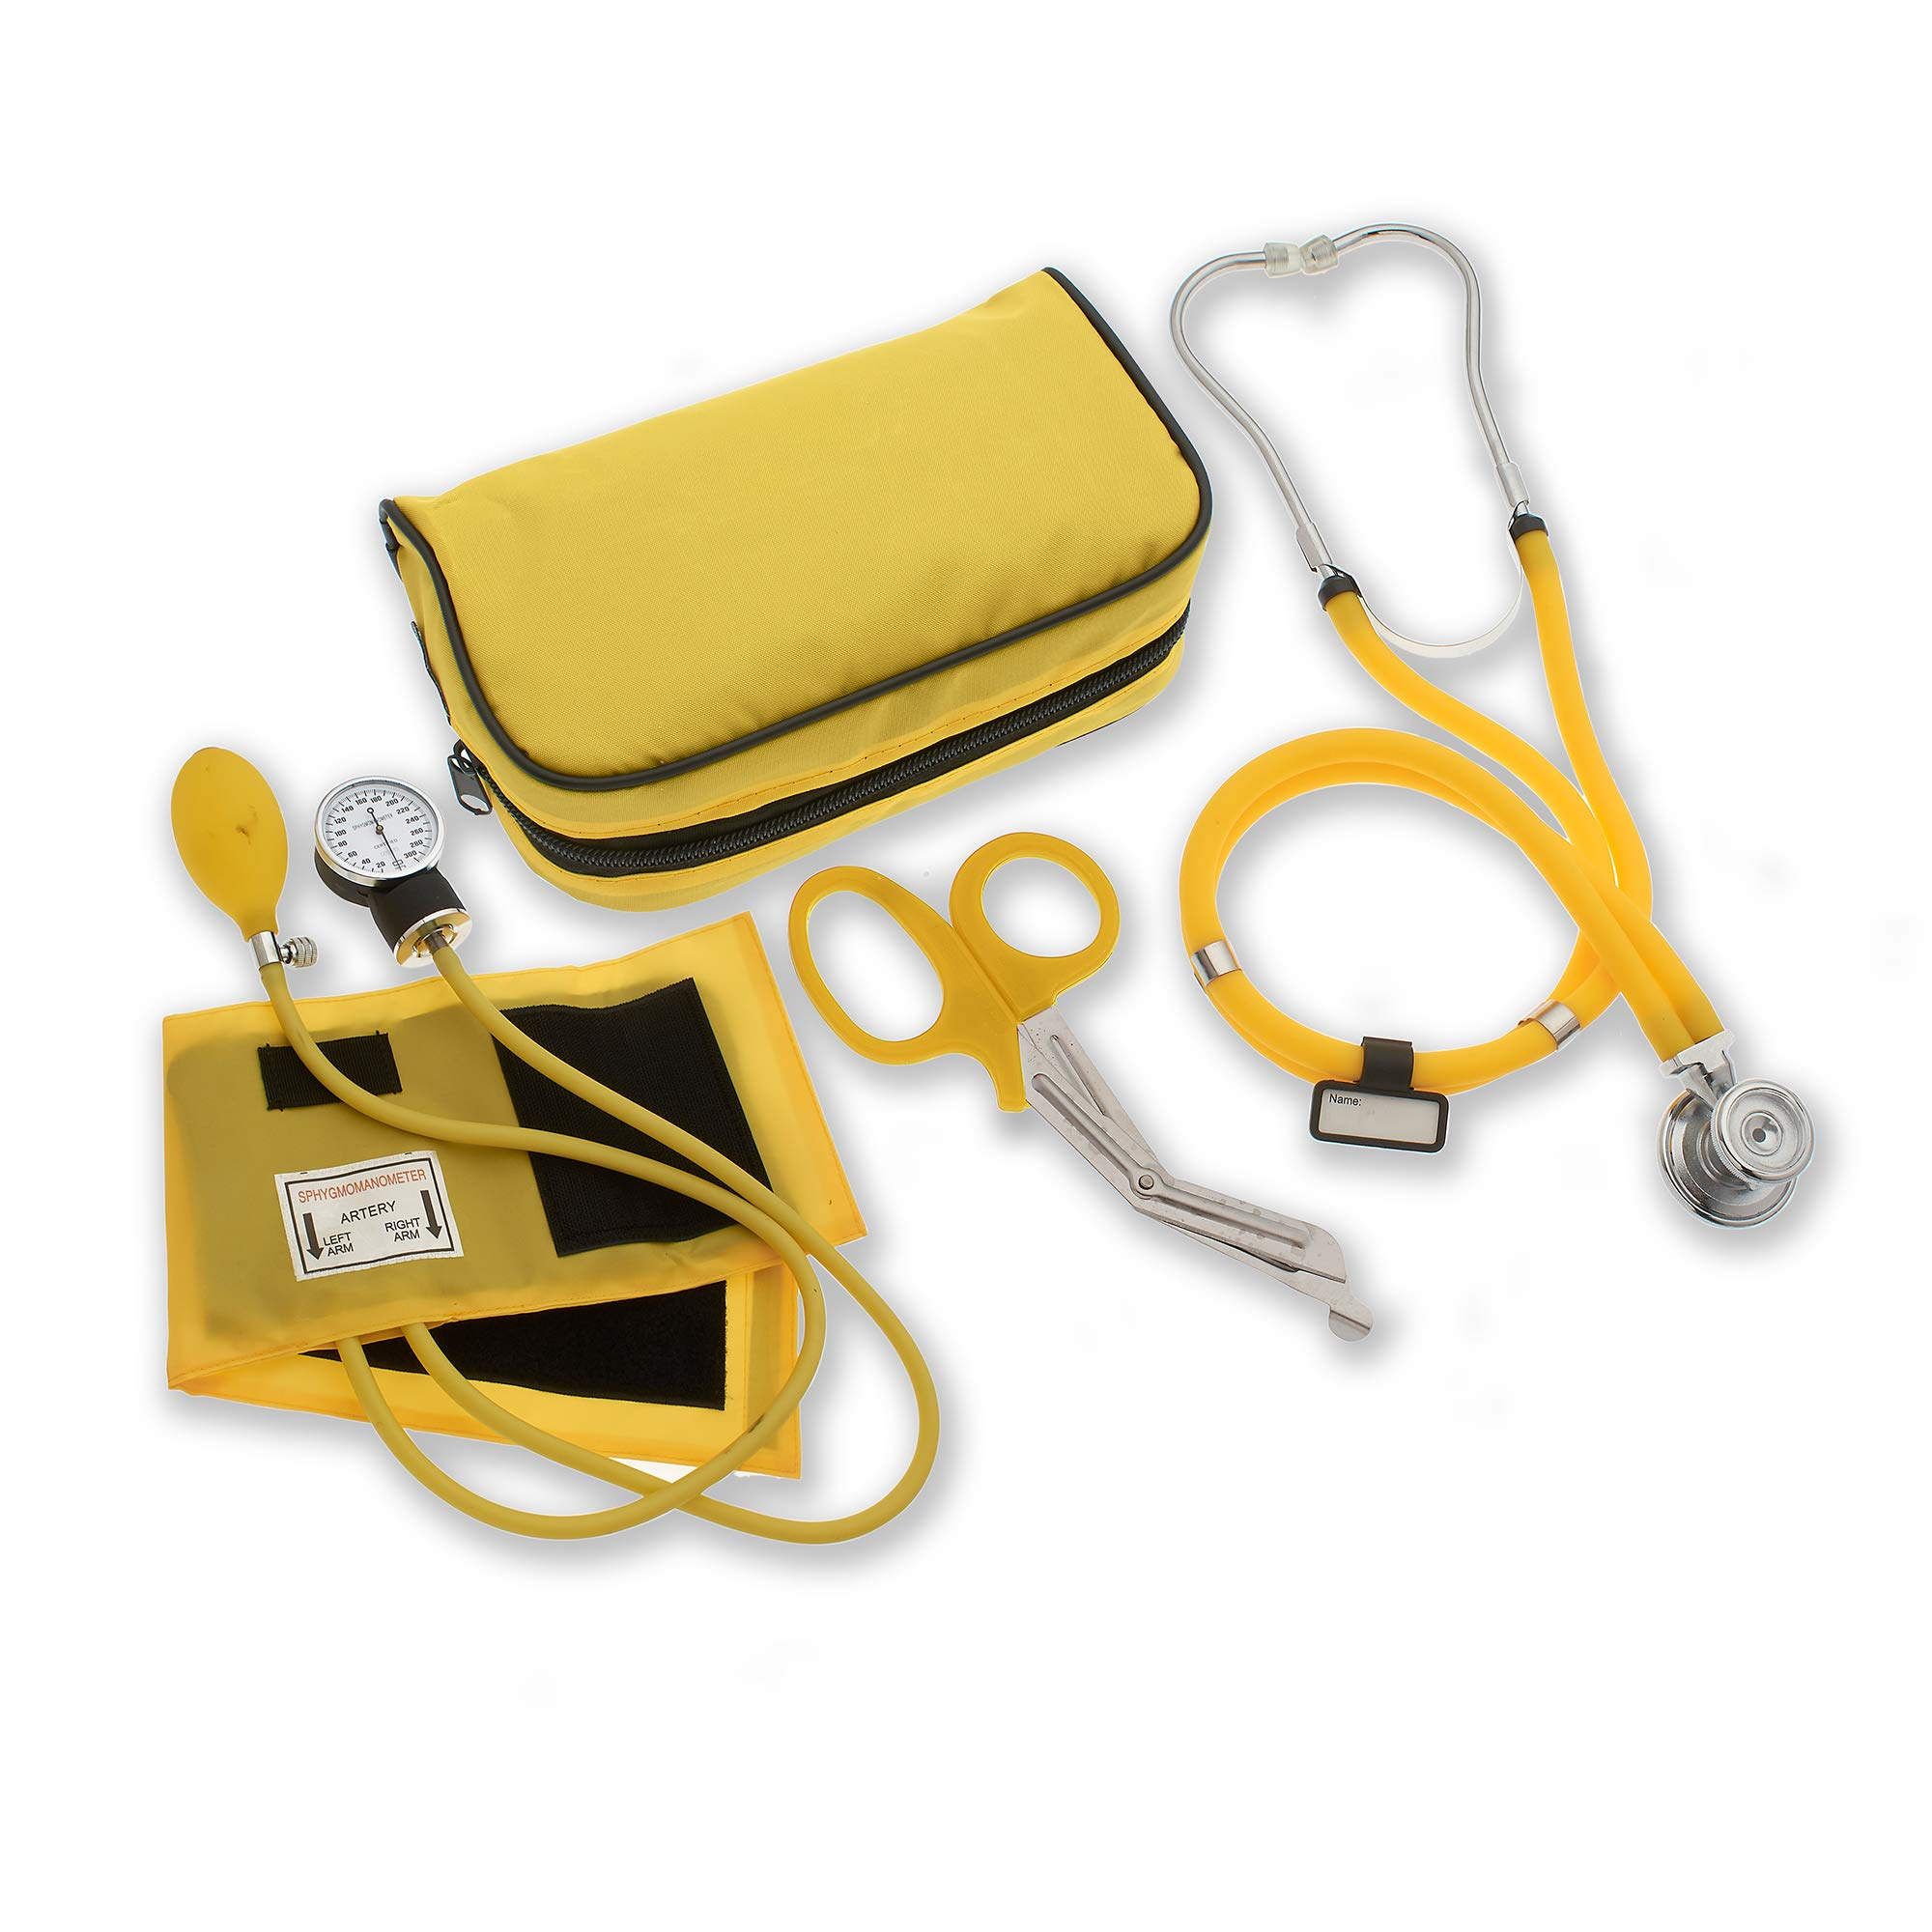 ASATechmed Stethoscope Pressure Students Firefighter